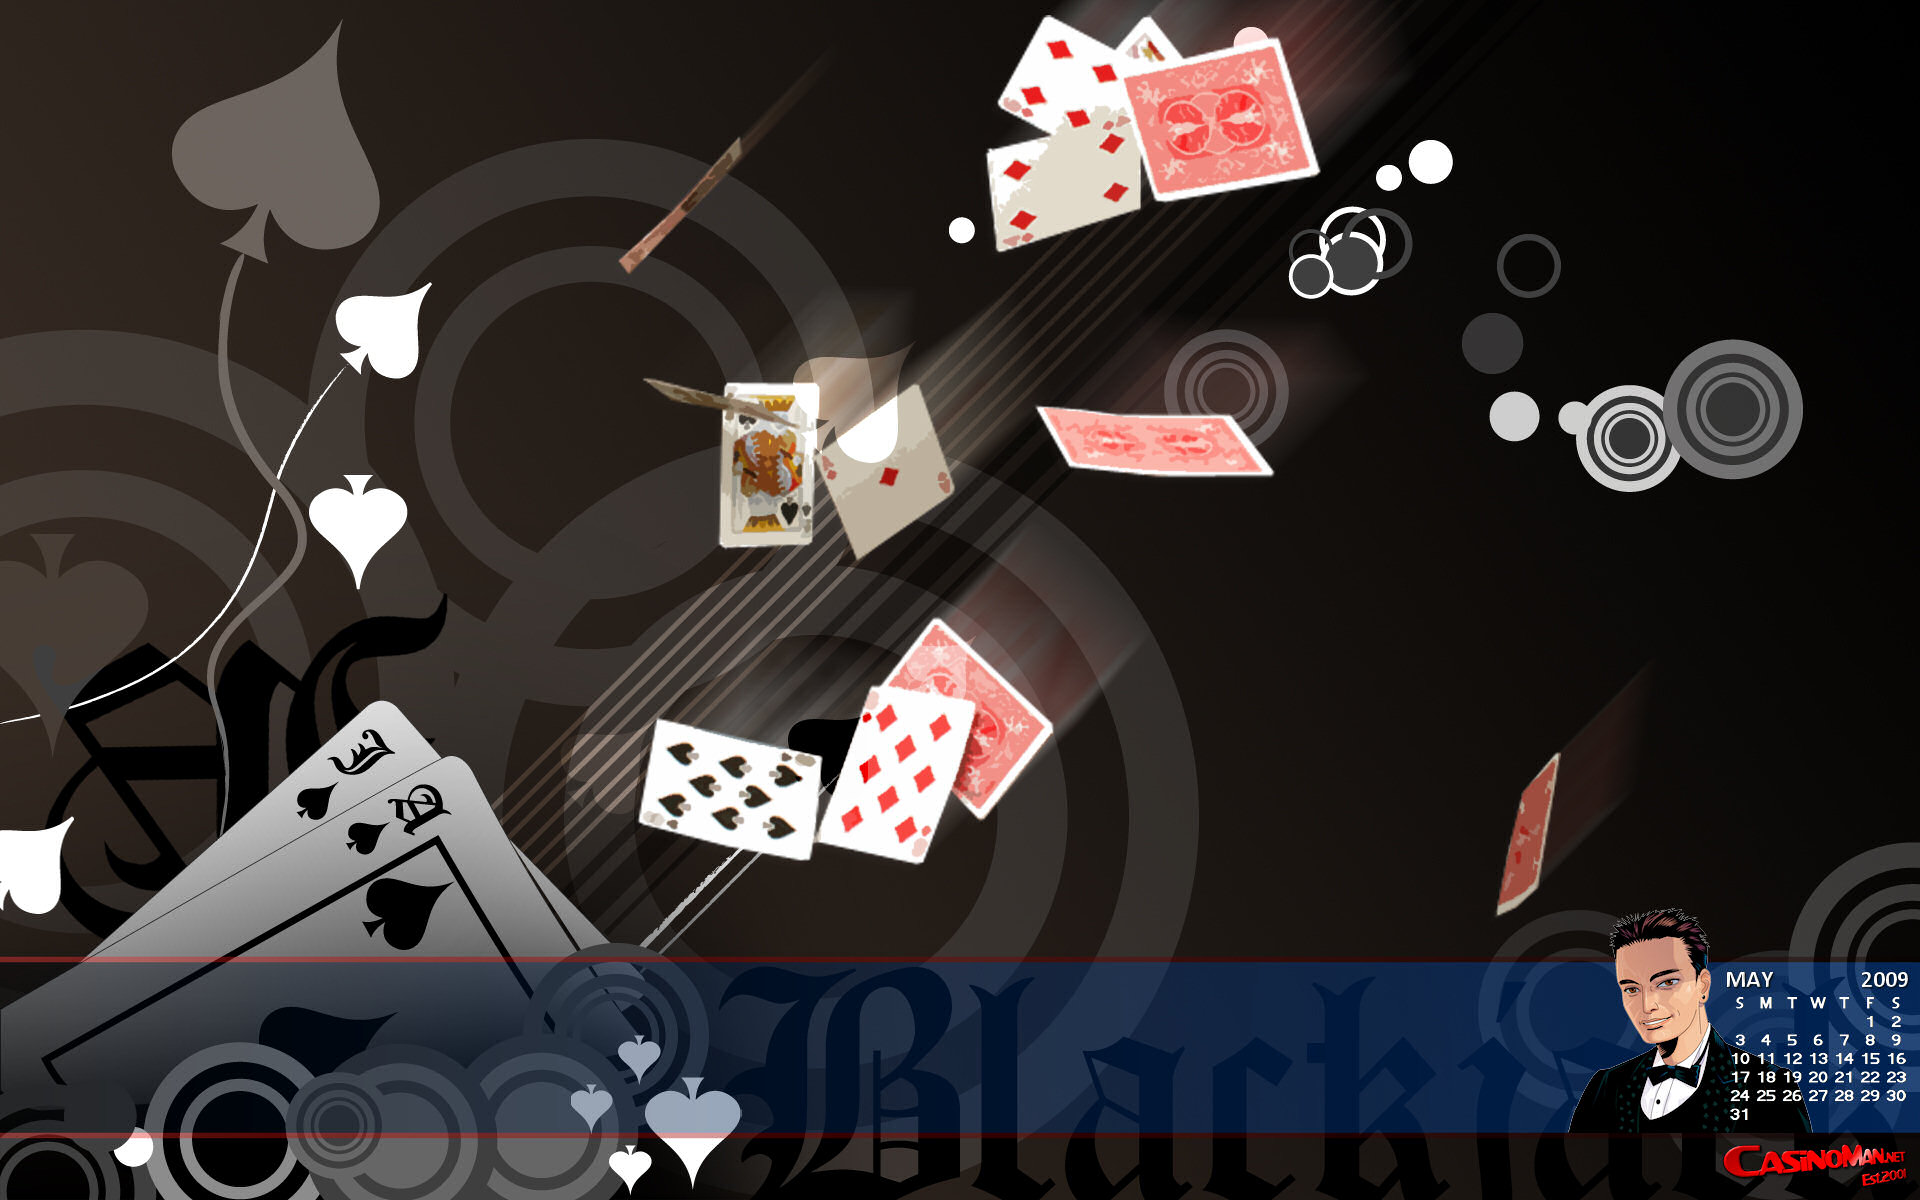 I Do Not Want To Spend This Much Time On Online Casino. How About You?